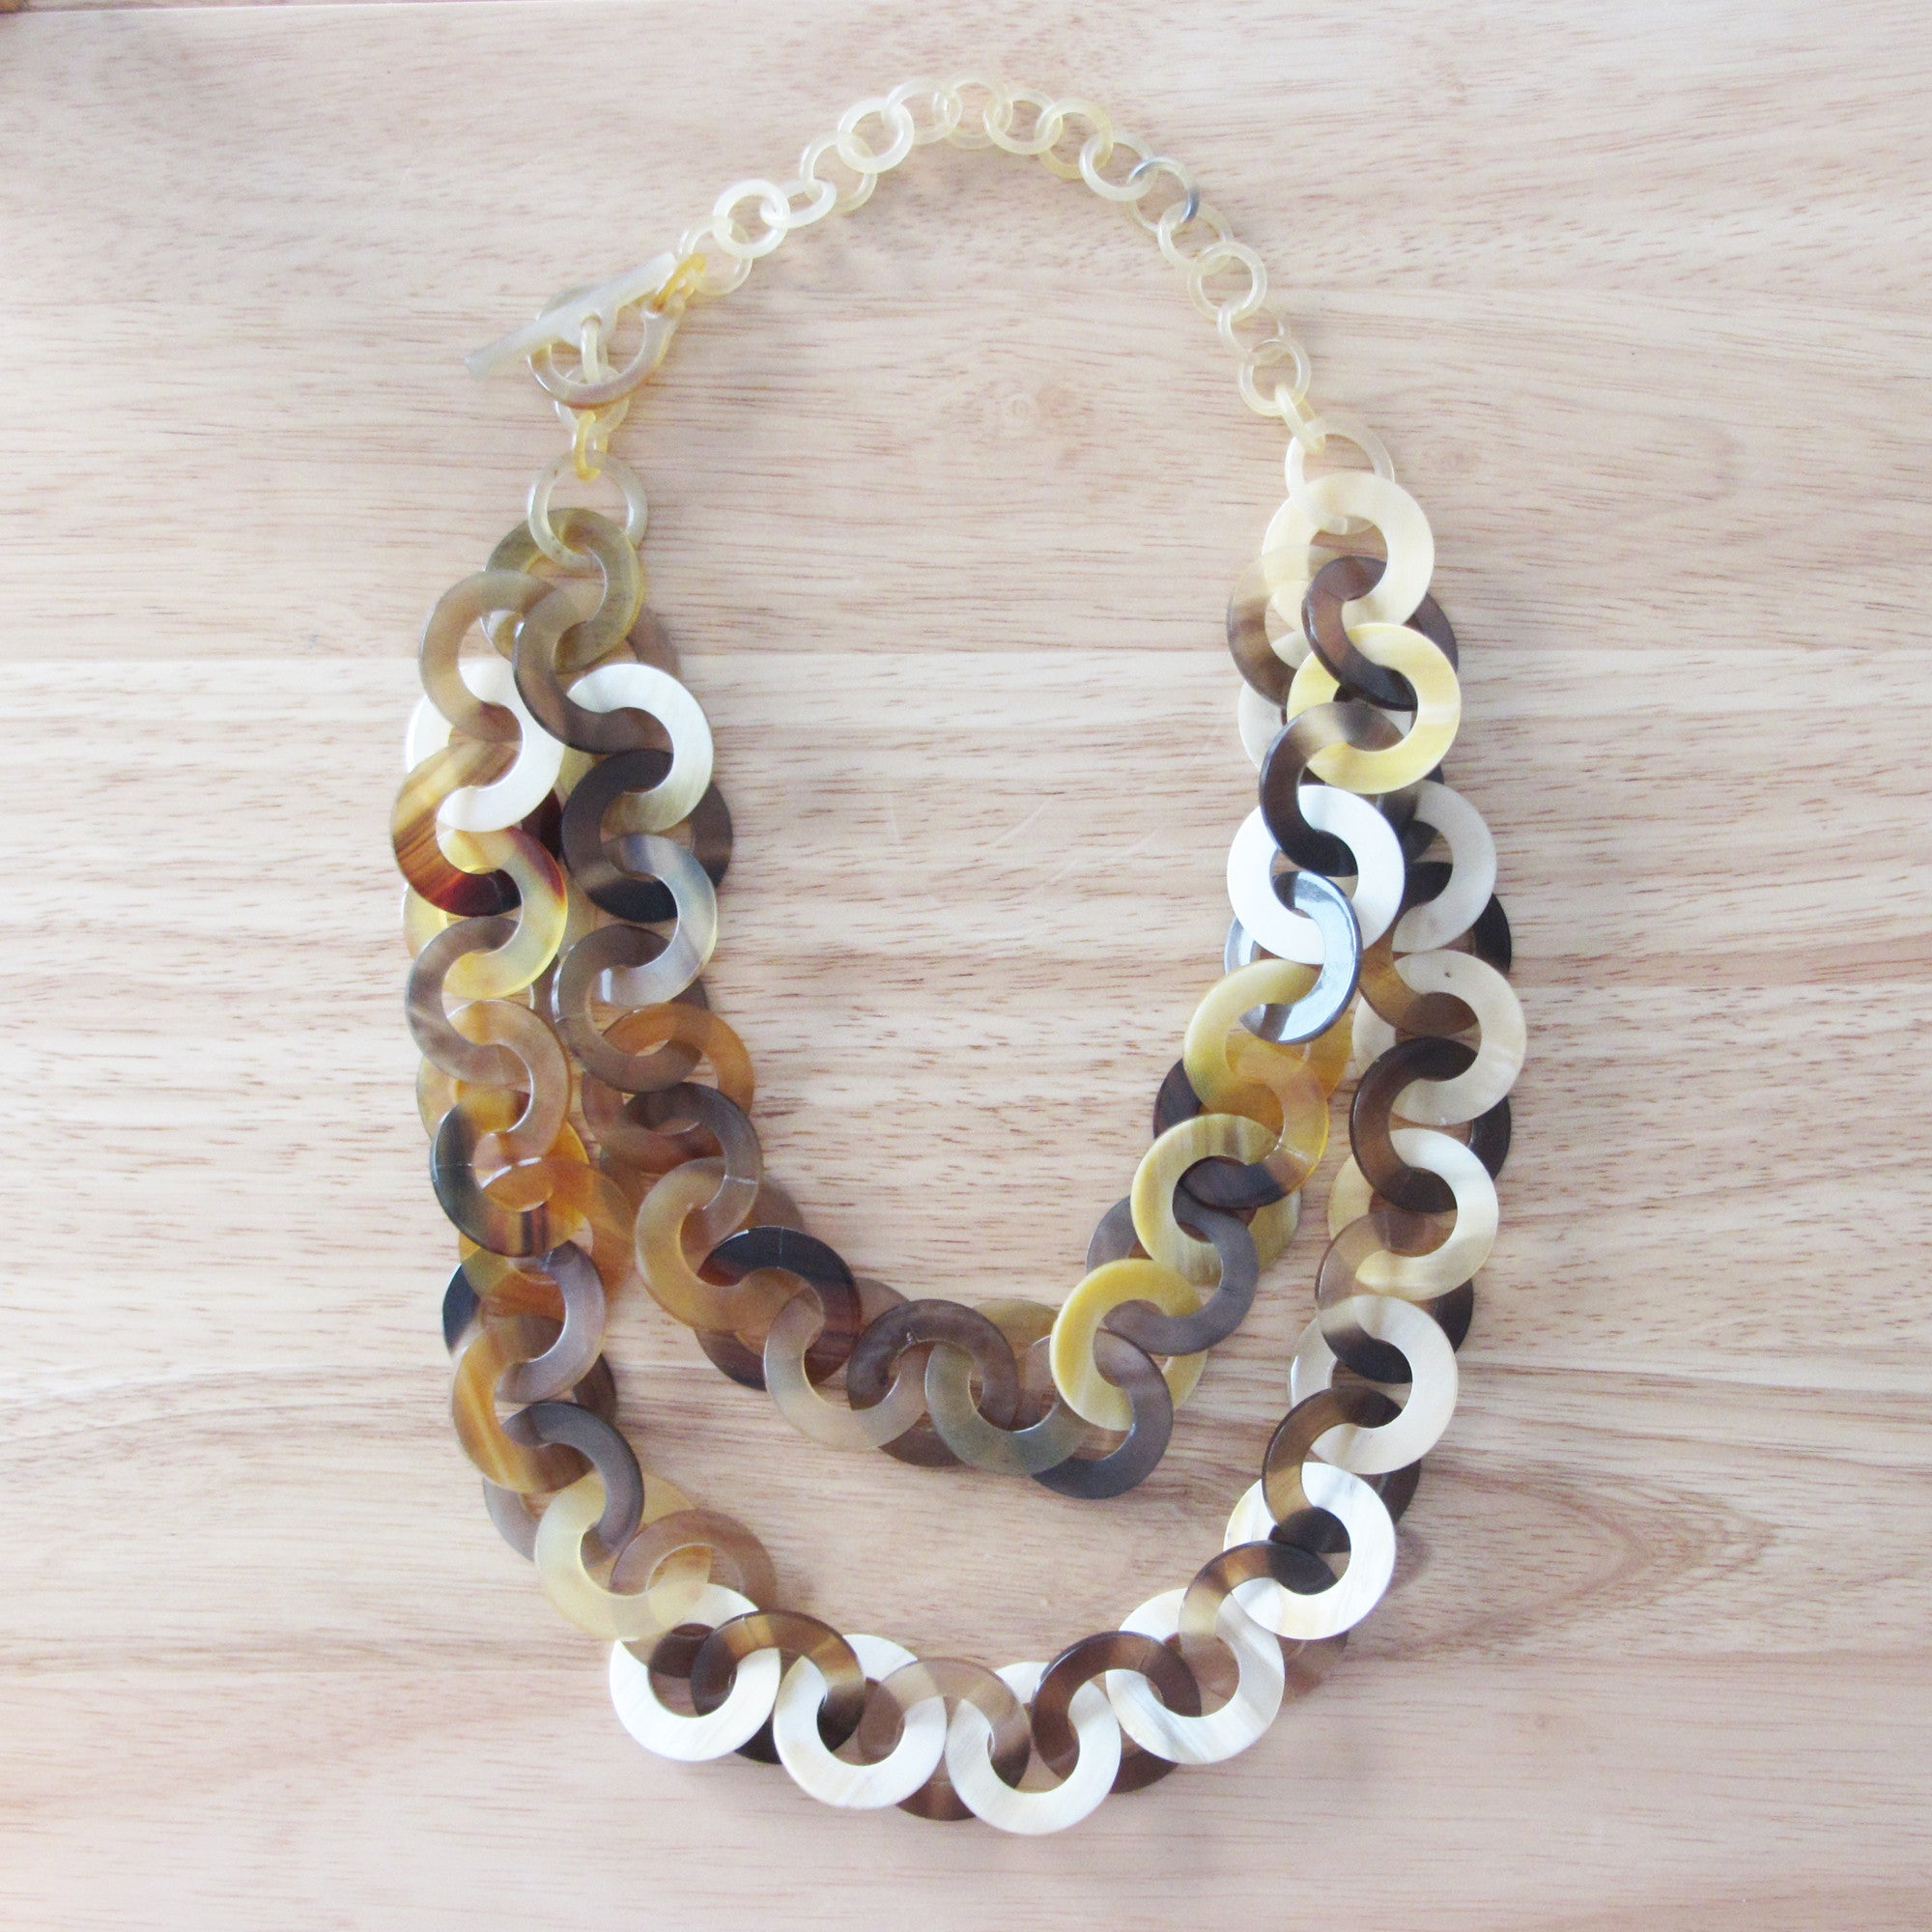 Charm necklace, layer link chain buffalo horn necklace